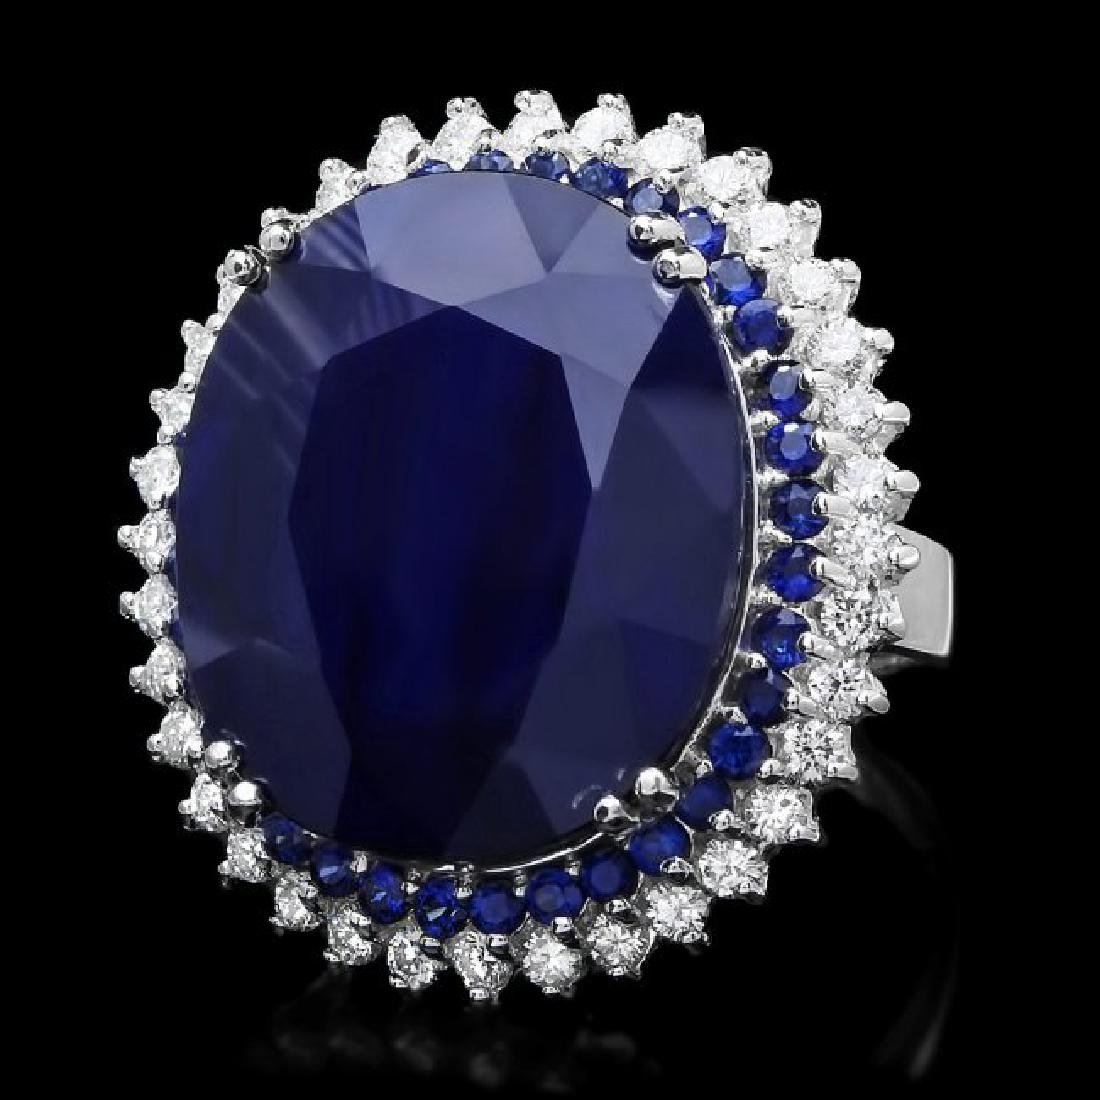 14k Gold 44.4ct Sapphire 1.35ct Diamond Ring